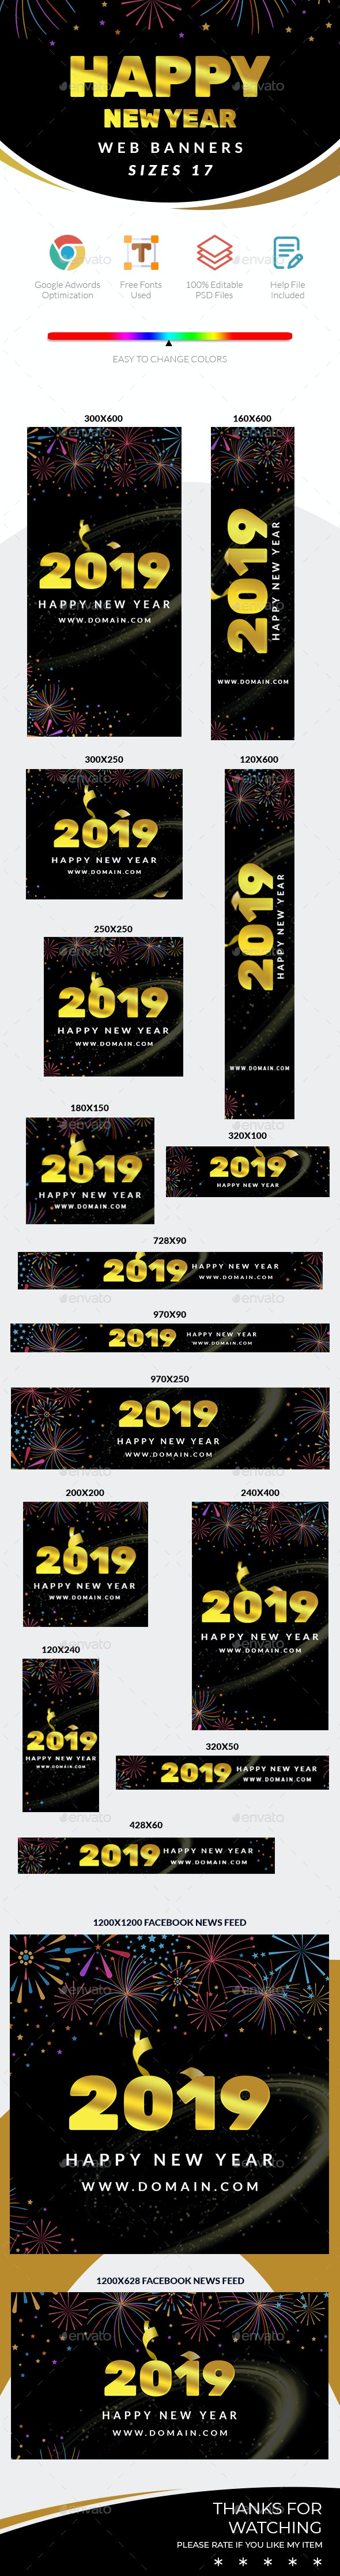 2019 Happy New Year Web Banners - Banners & Ads Web Elements